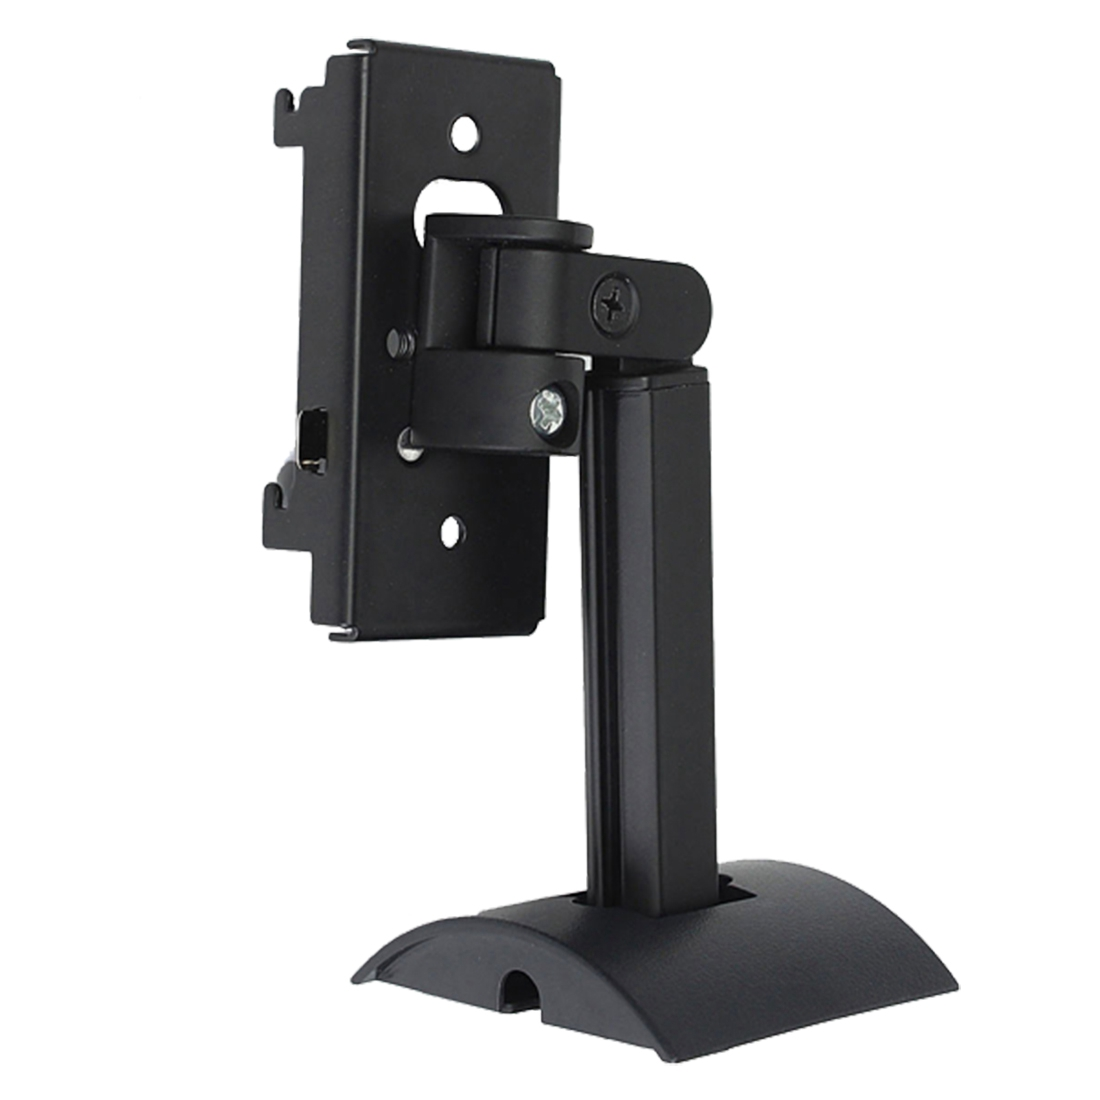 wall ceiling bracket mount support for lifestyle ub 20. Black Bedroom Furniture Sets. Home Design Ideas